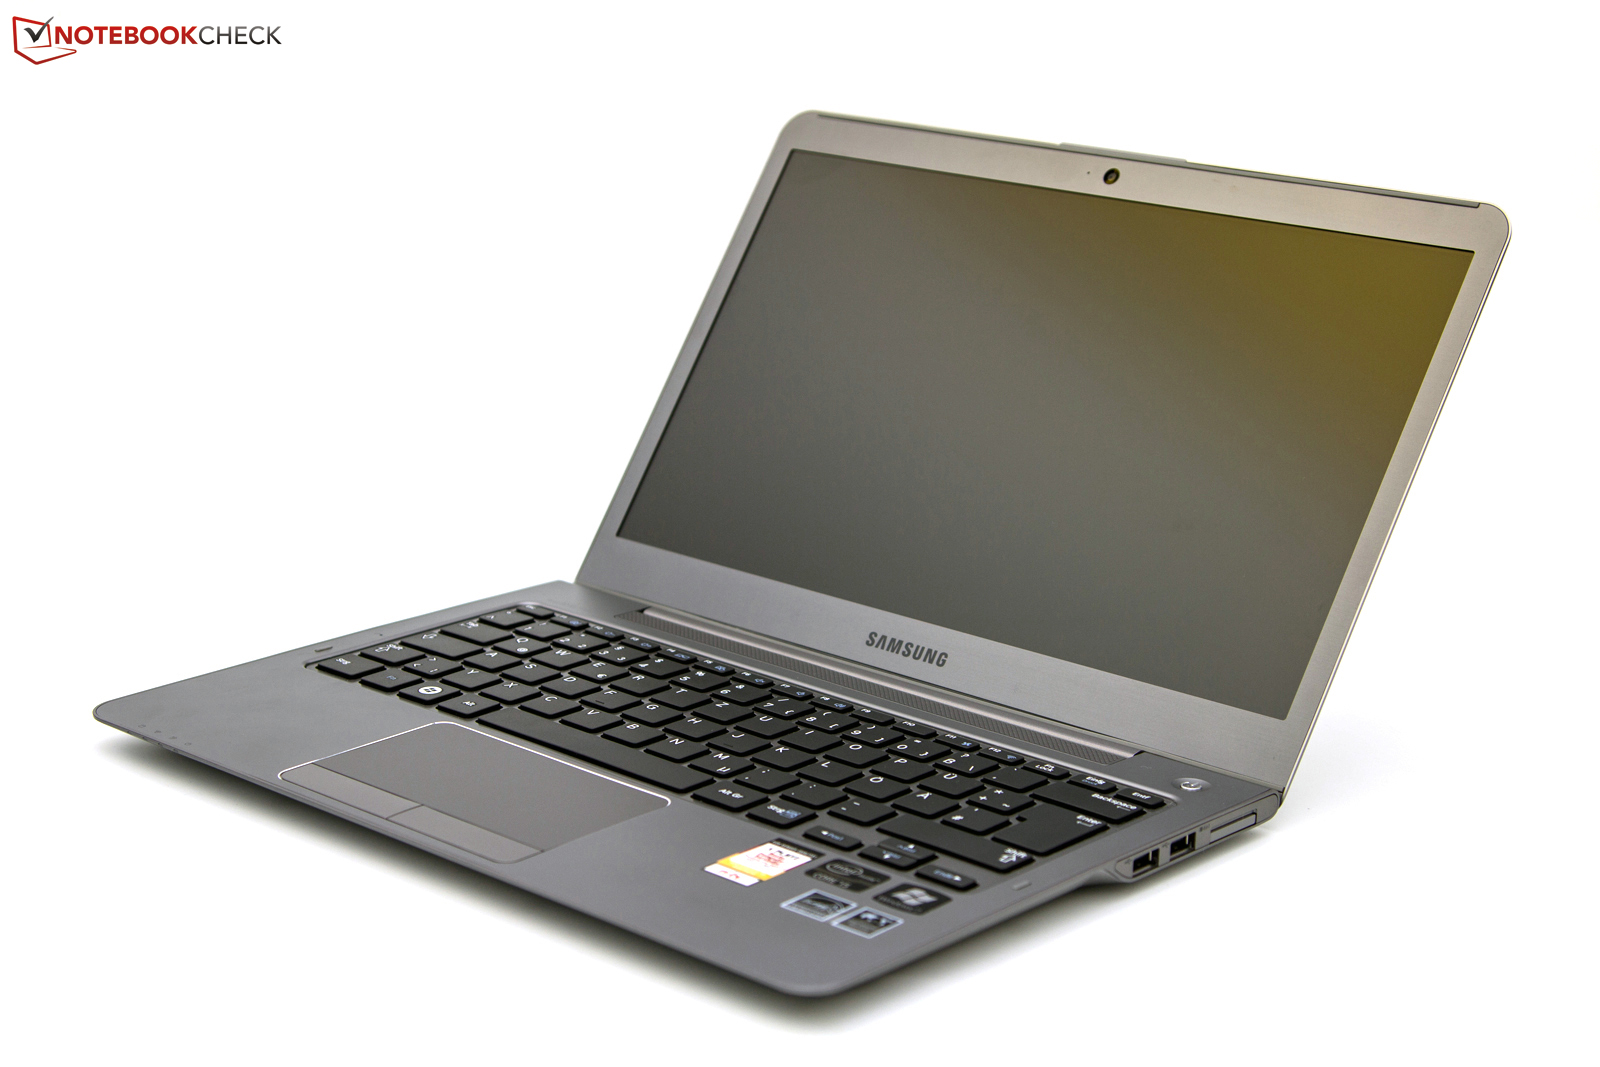 Samsung NP530U3C Notebook Drivers for Windows